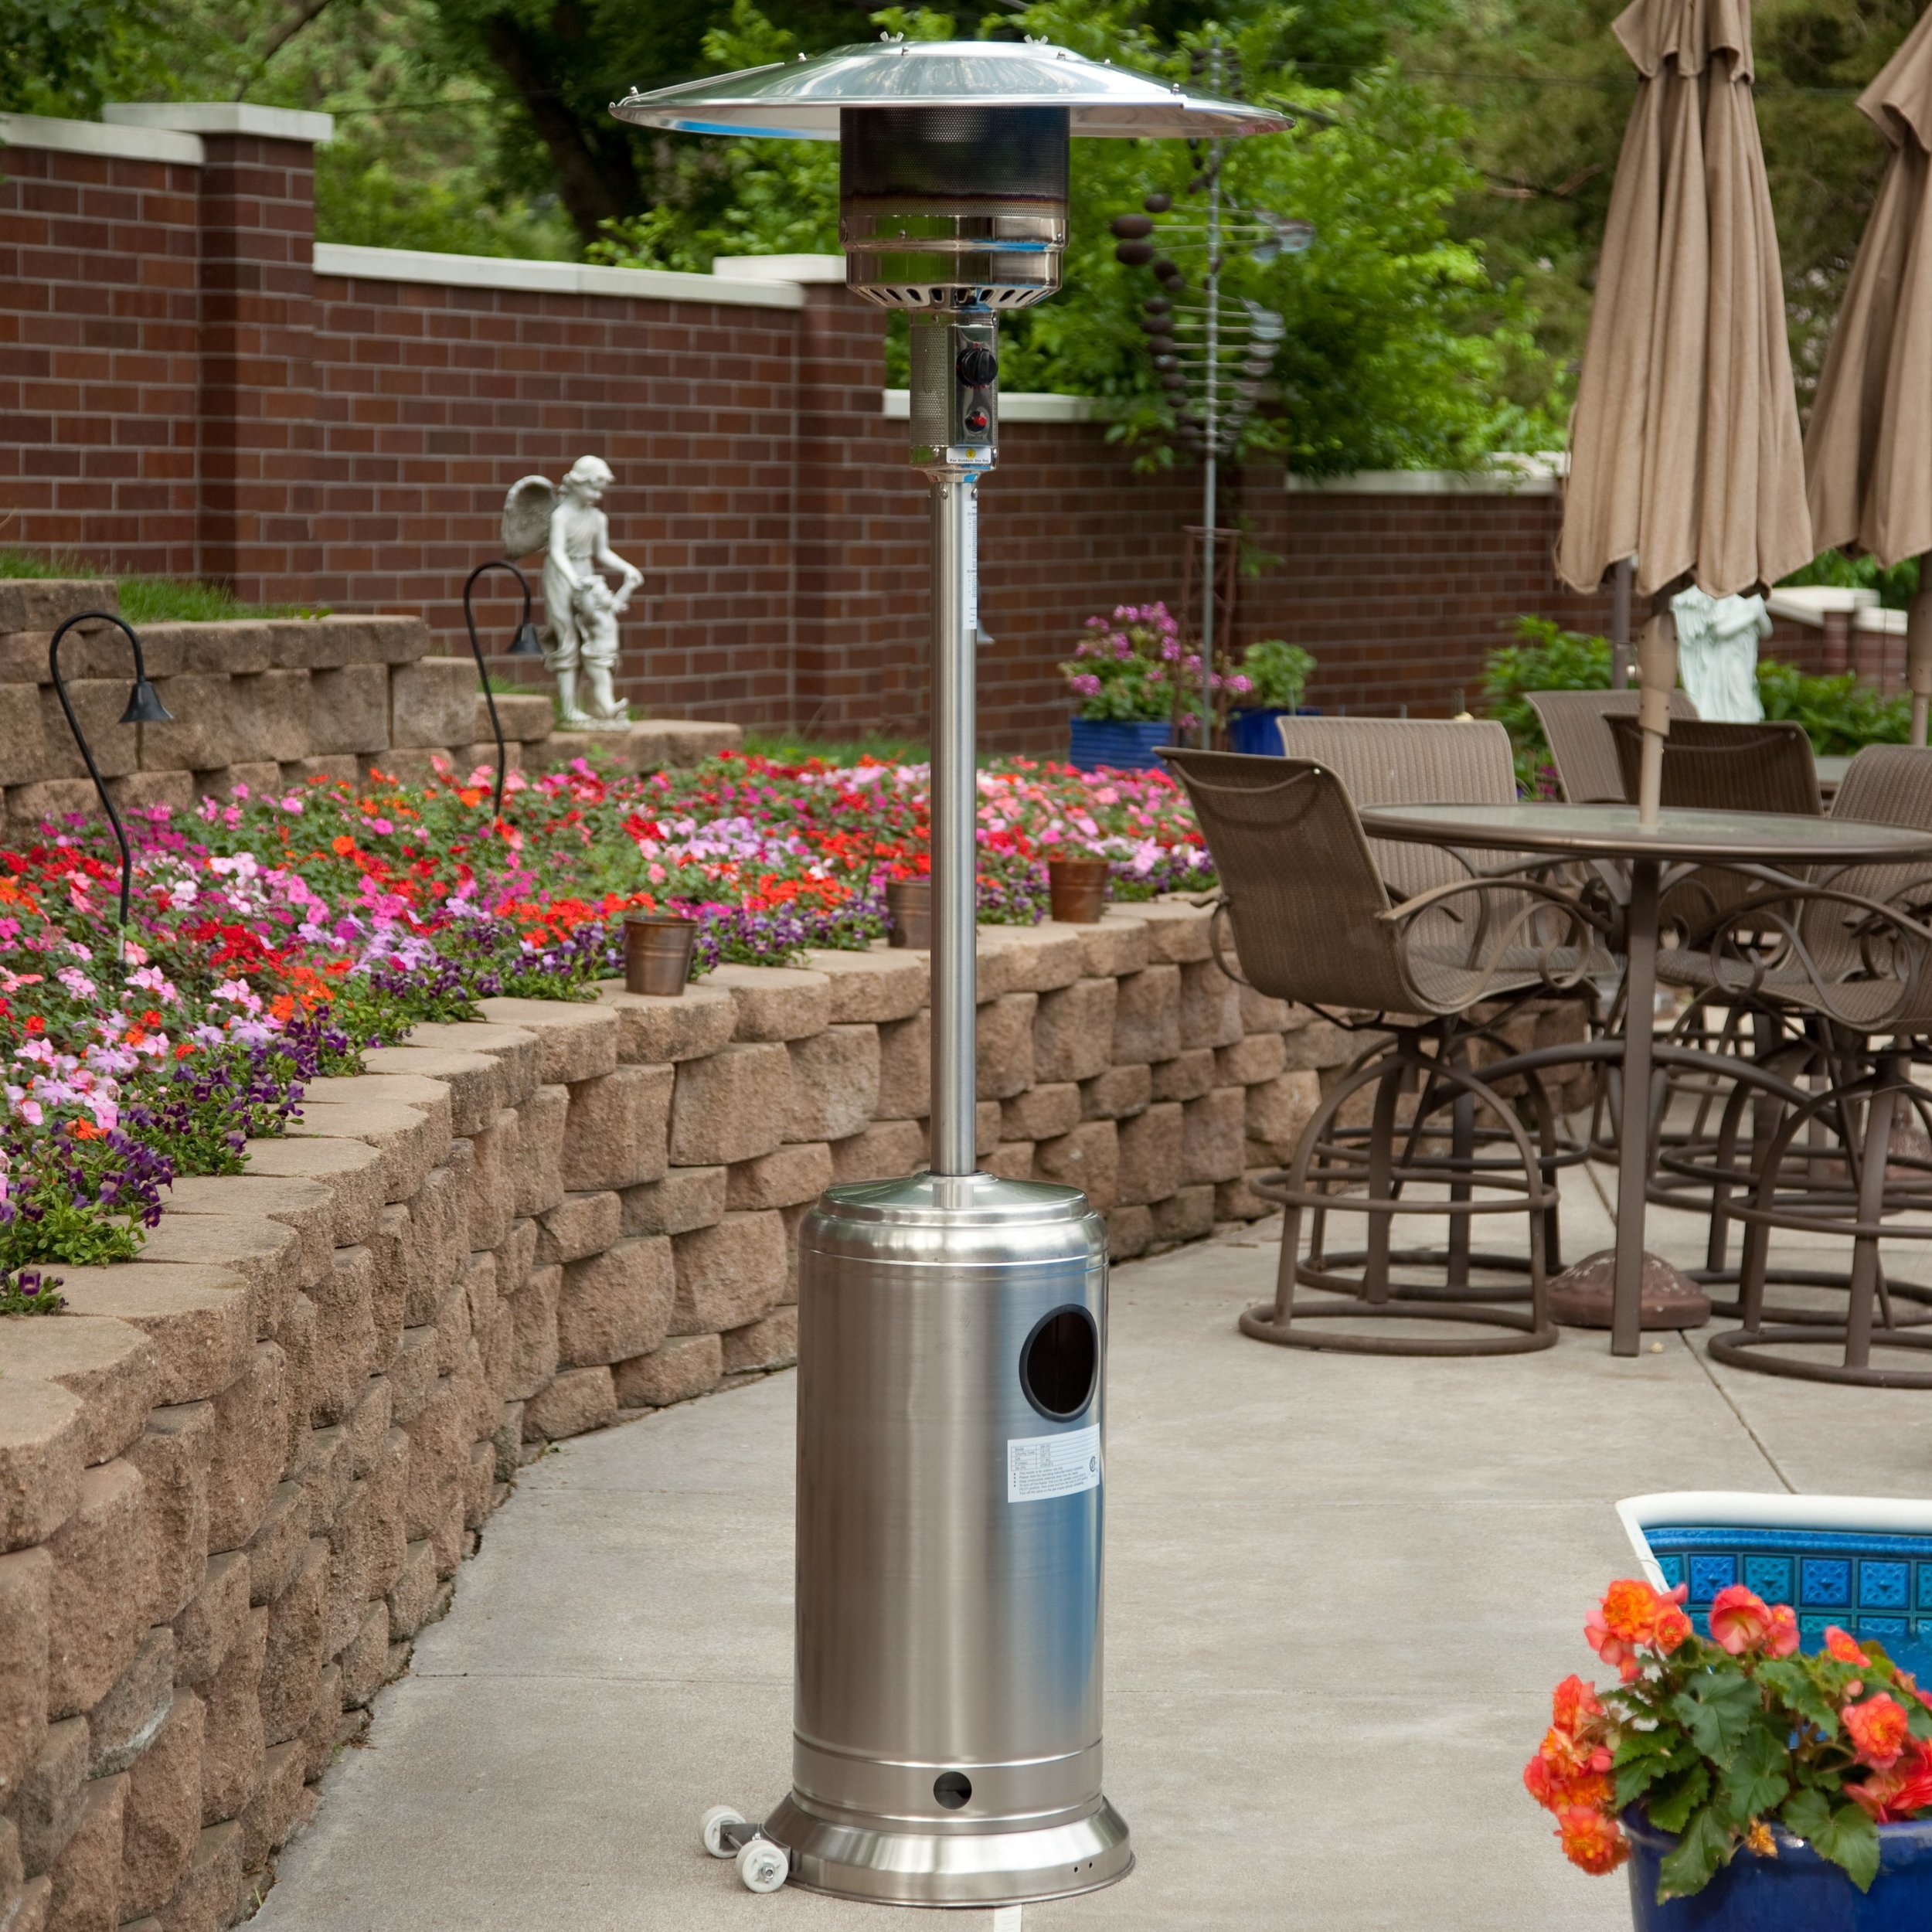 OutdoorHeaterPic.jpg